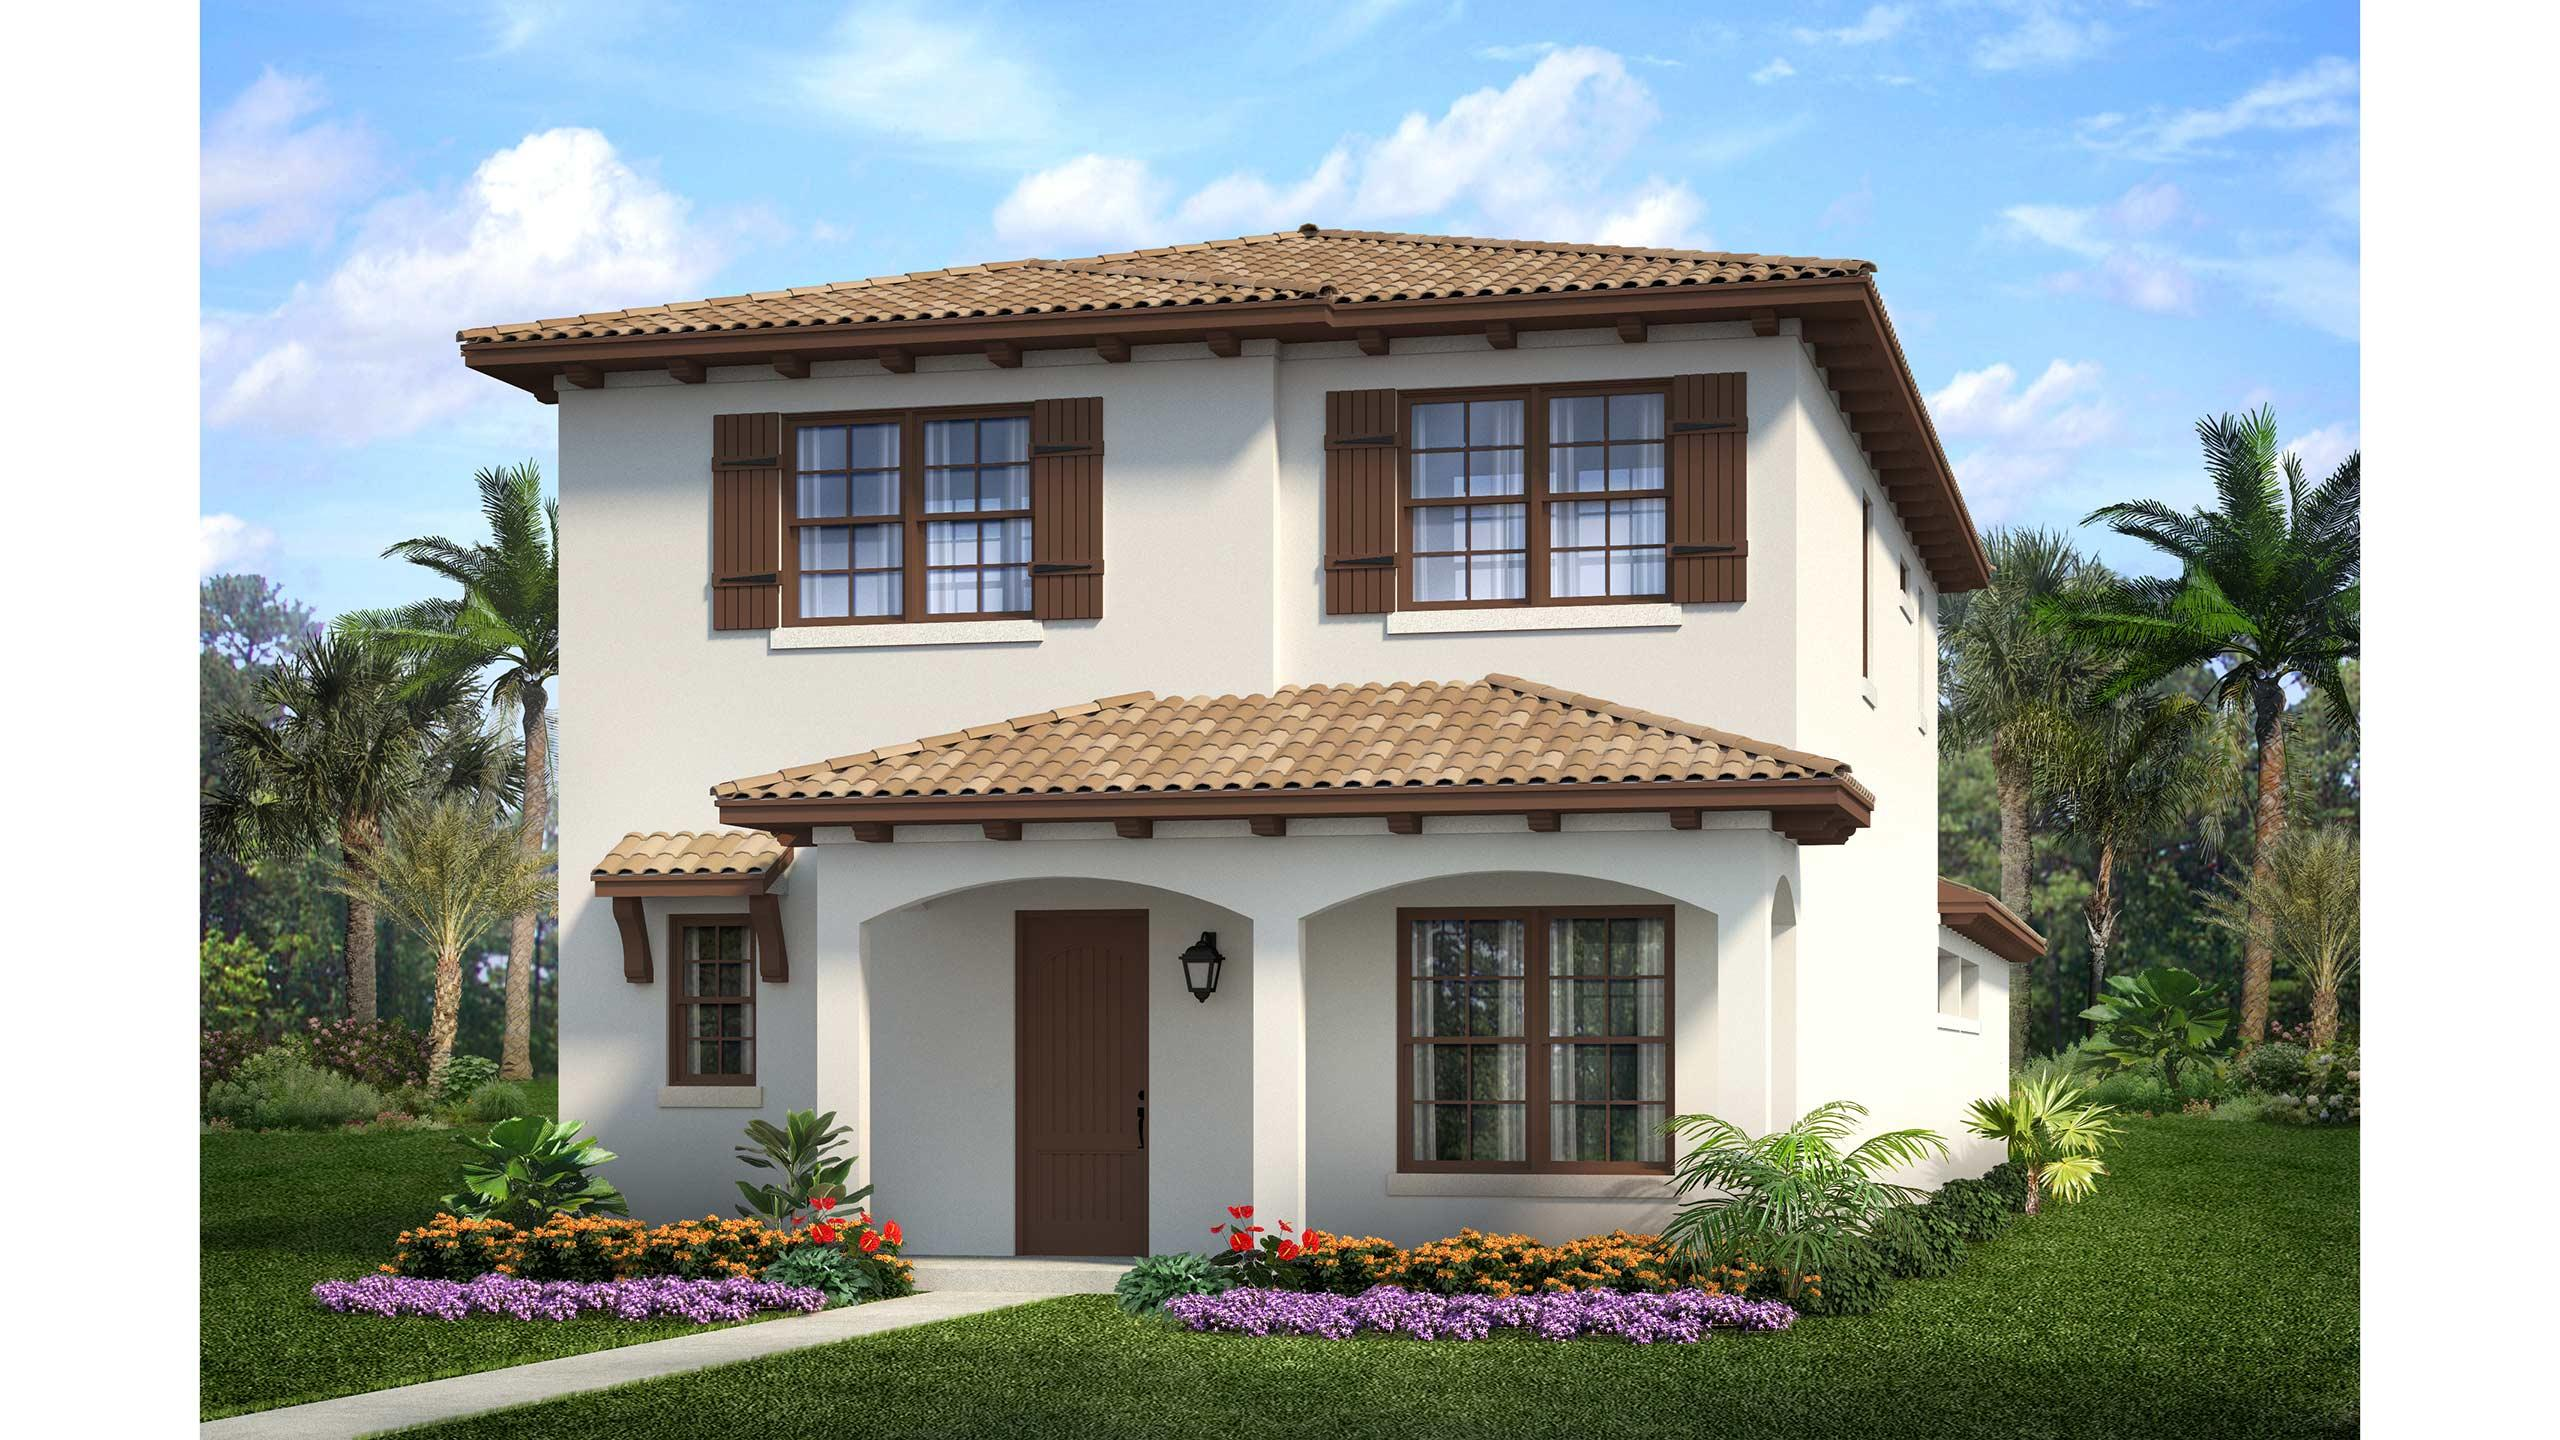 New Home for sale at 8055 Hobbes Way in Palm Beach Gardens